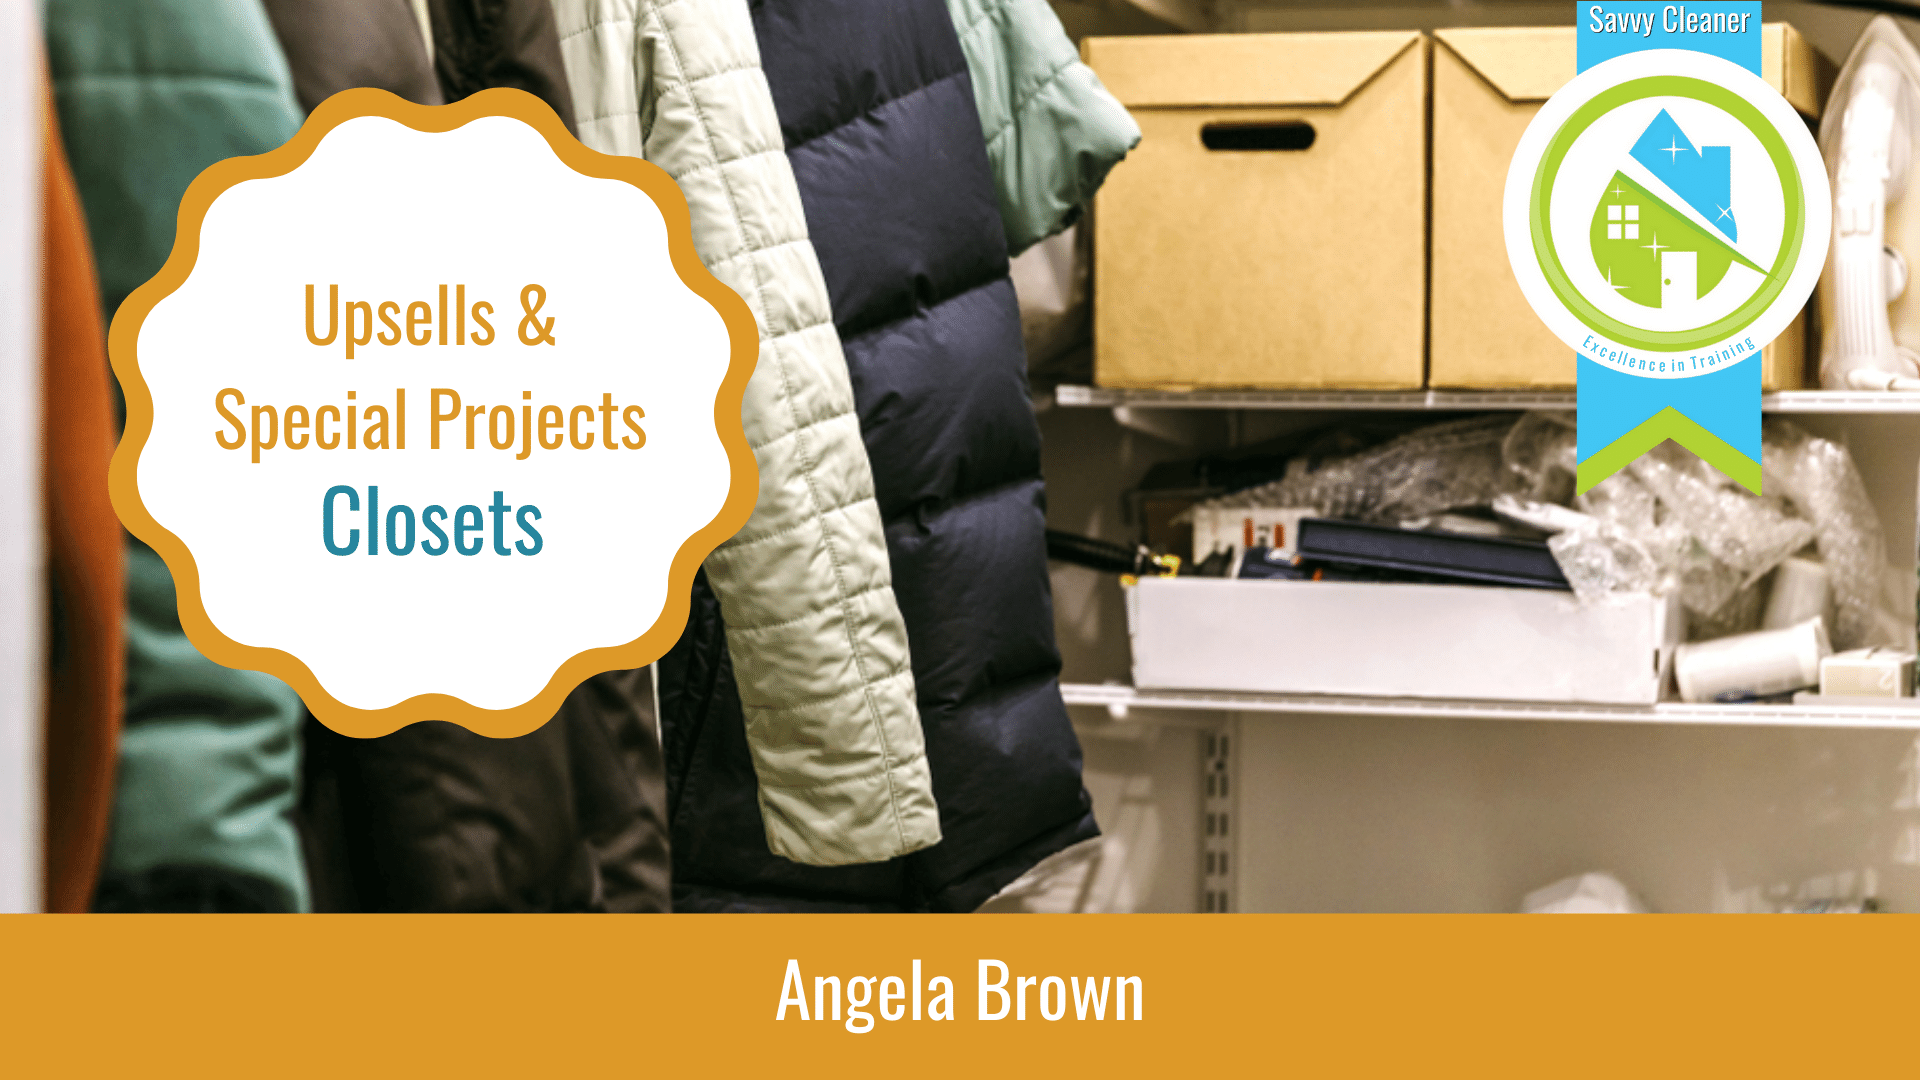 Upsells and Special Projects Closet Packages